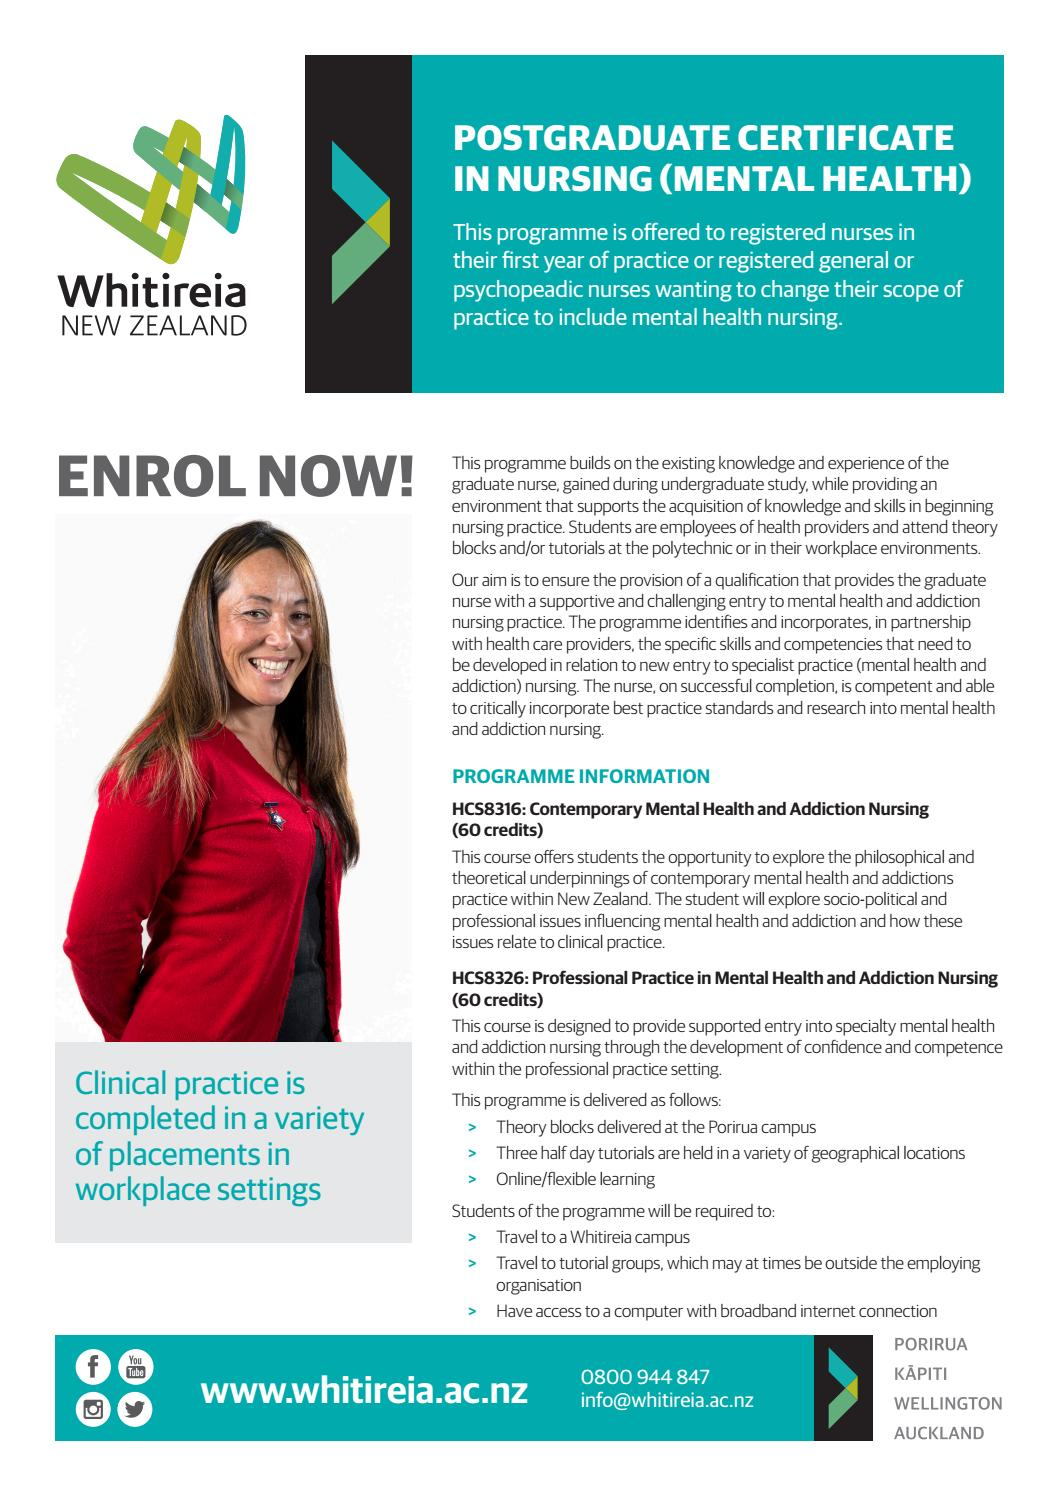 Postgraduate Certificate In Nursing Mental Health By Whitireia New